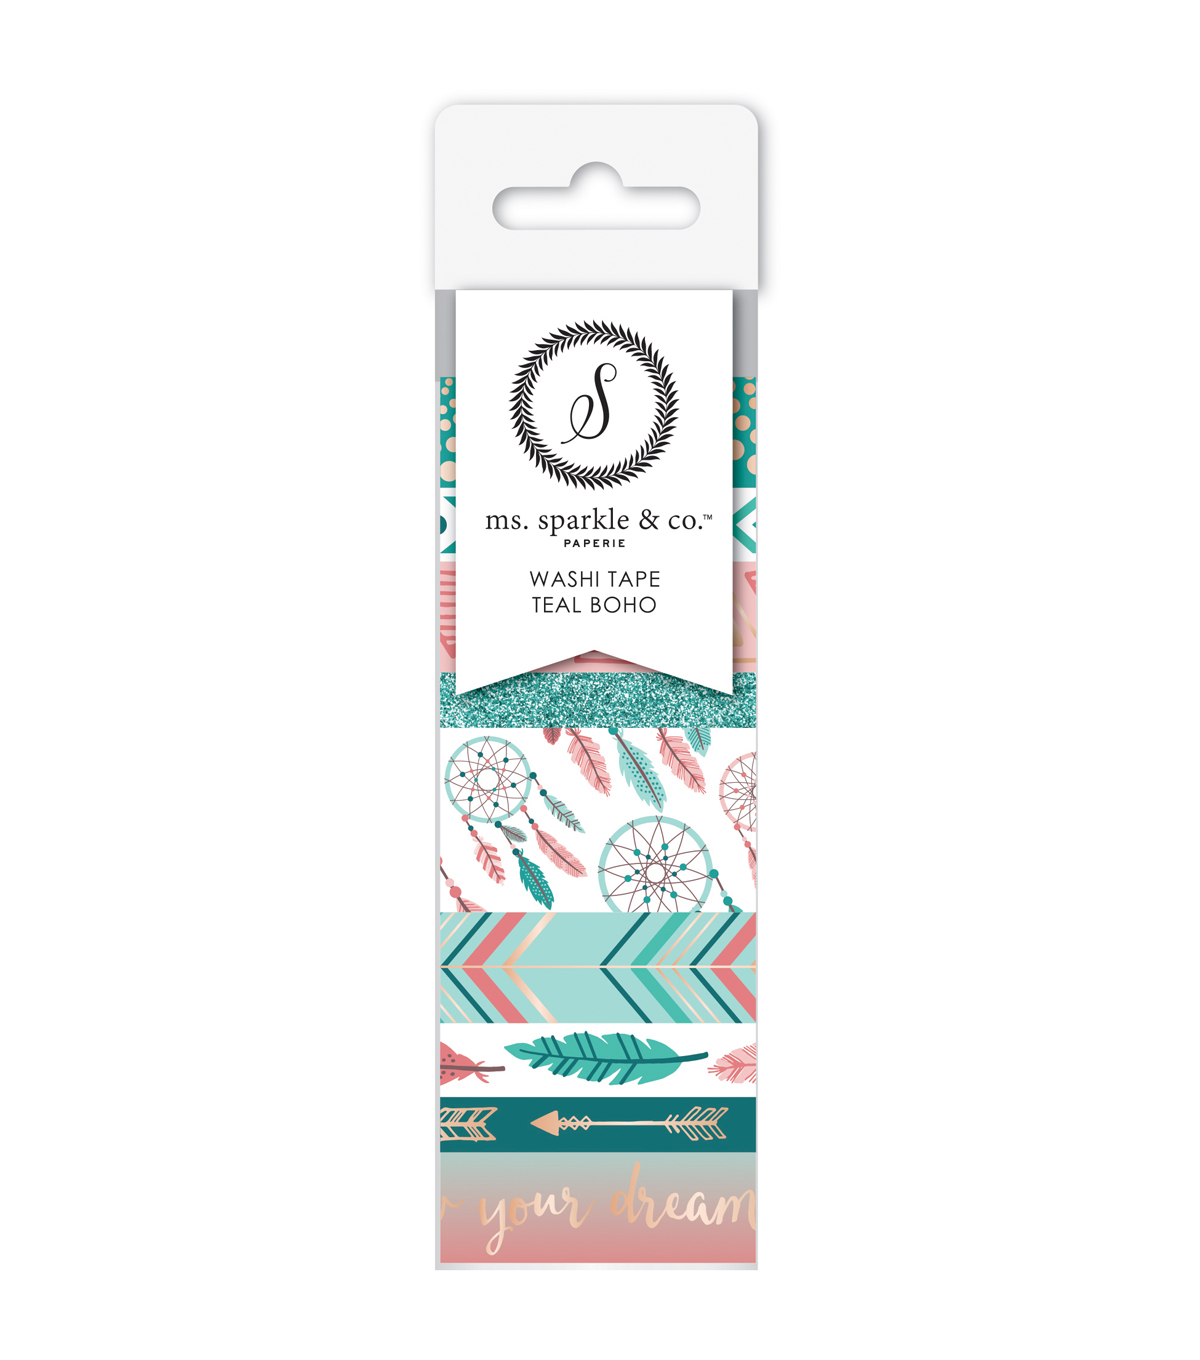 Ms. Sparkle & Co. 9 pk Washi Tapes-Teal Boho